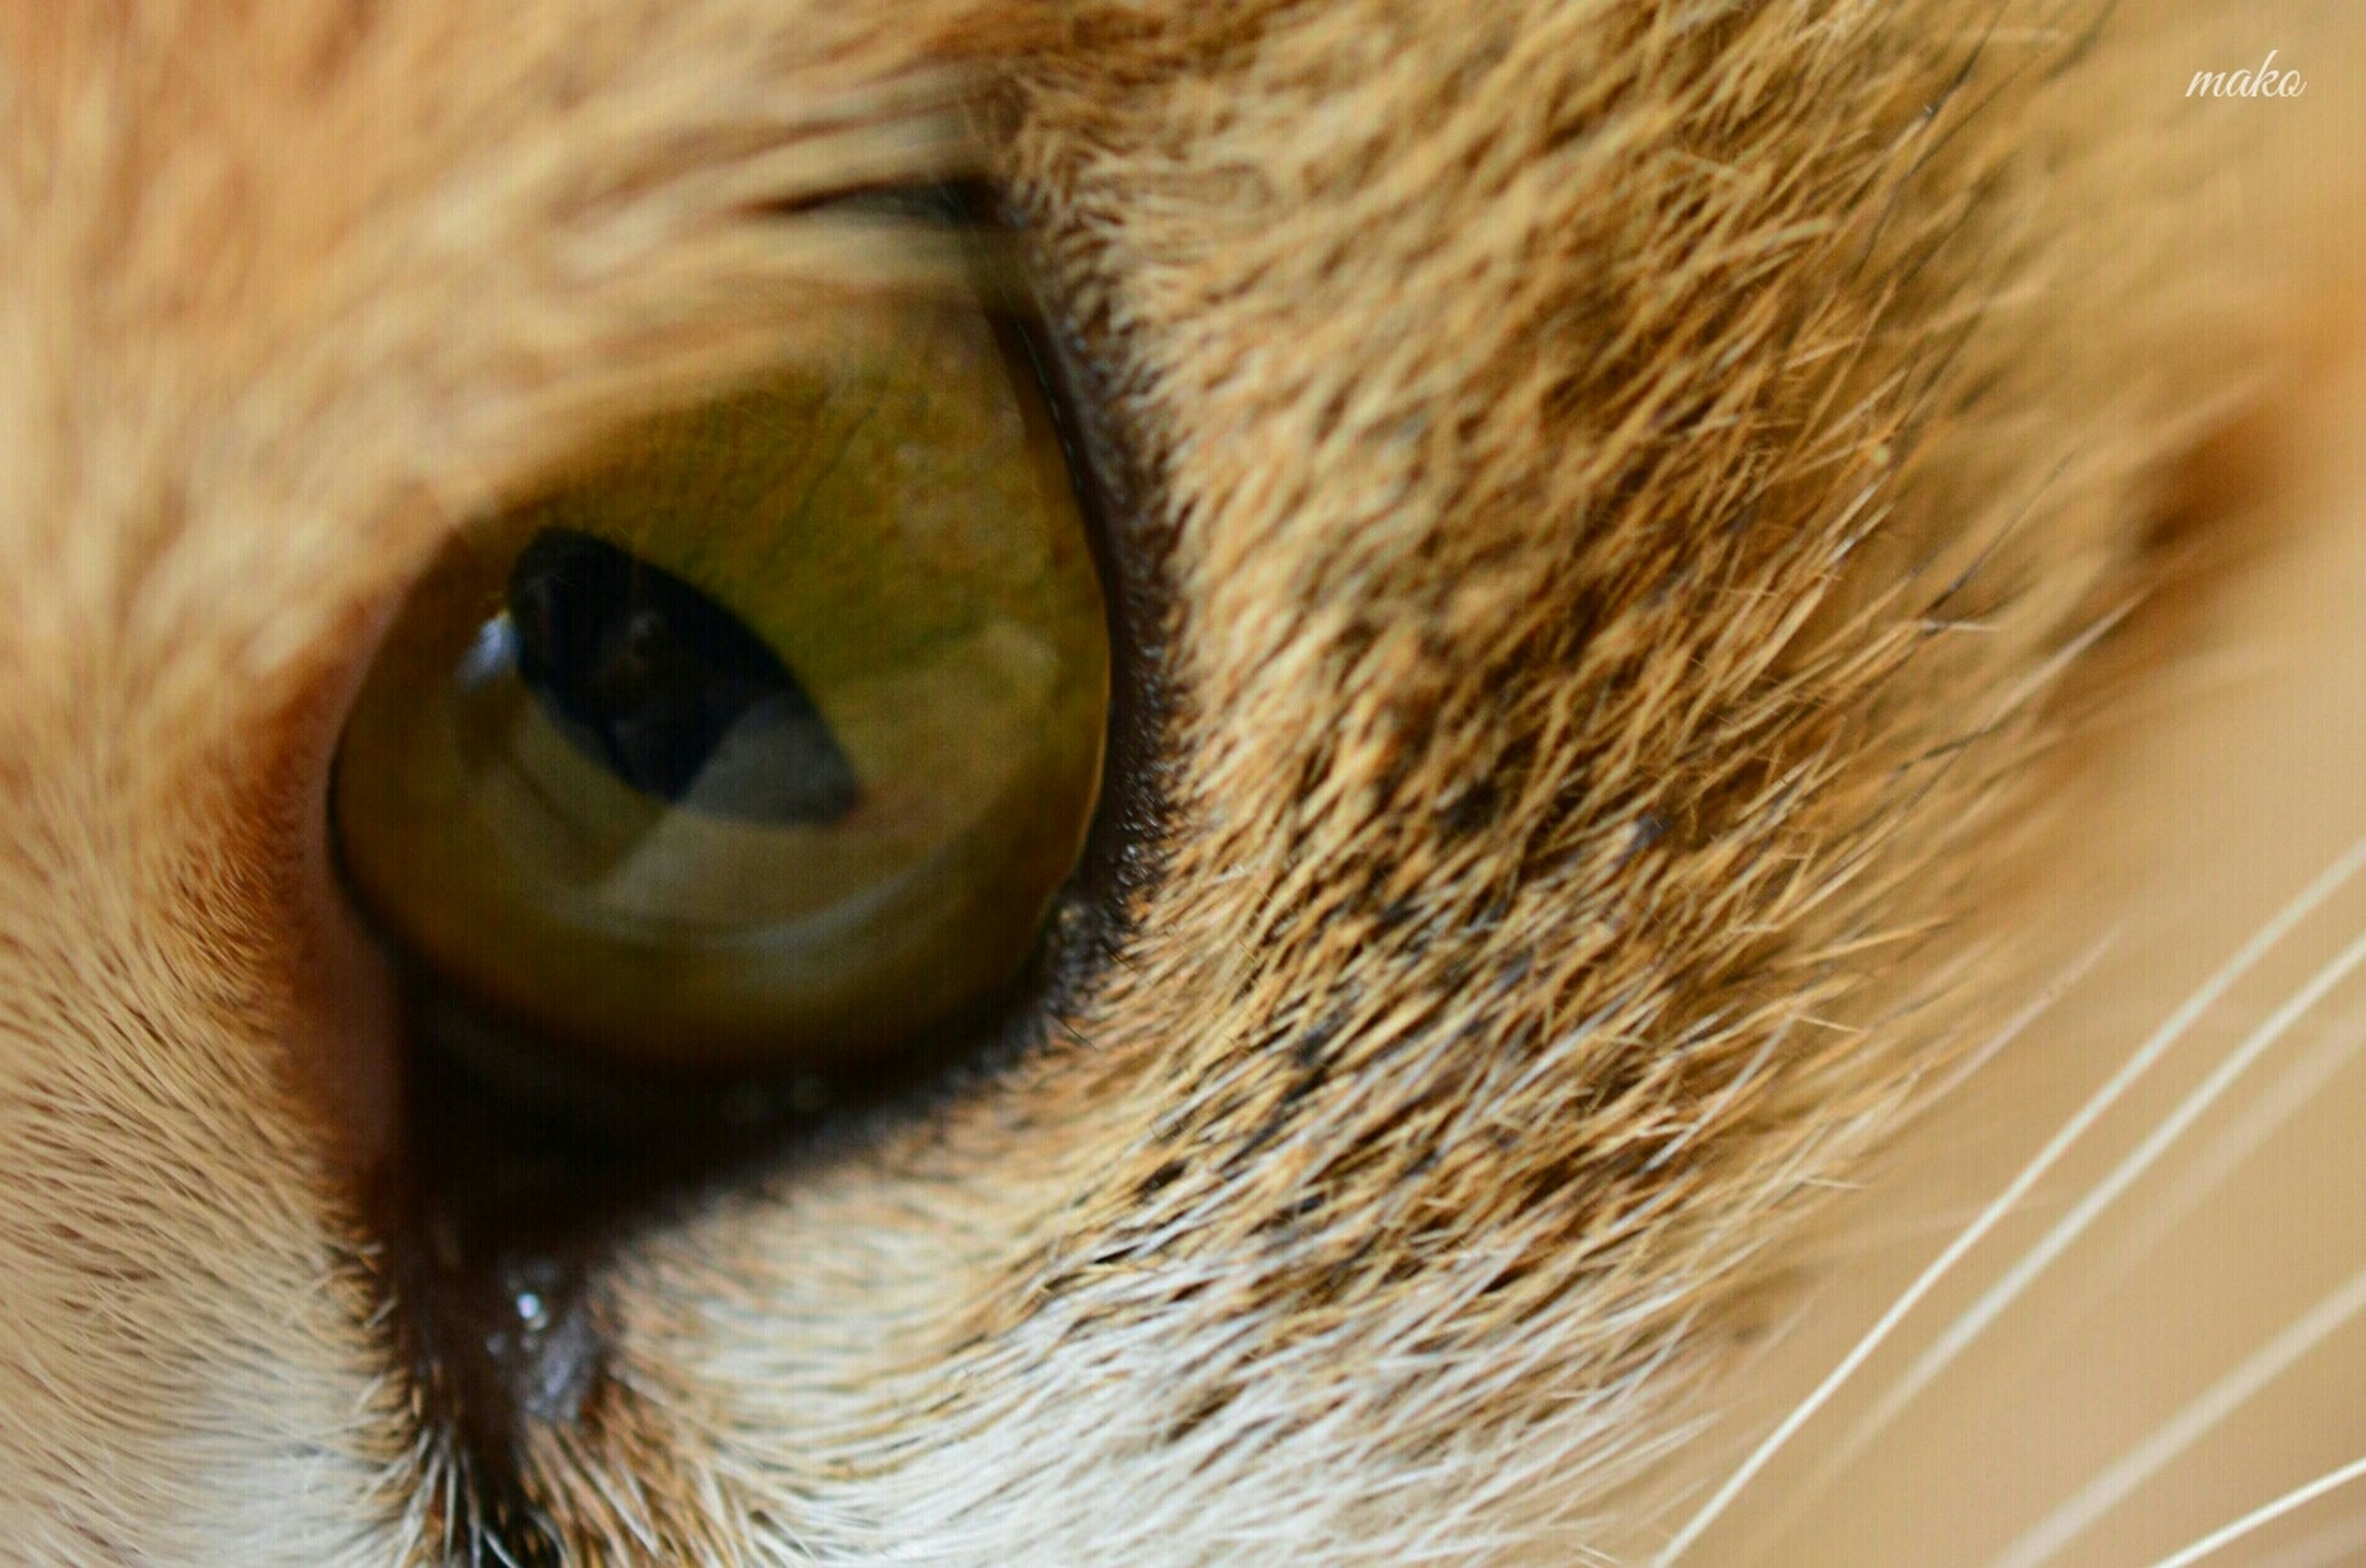 one animal, close-up, animal themes, animal body part, domestic animals, part of, pets, animal eye, animal head, indoors, extreme close-up, full frame, extreme close up, detail, mammal, selective focus, cat, animal hair, domestic cat, backgrounds